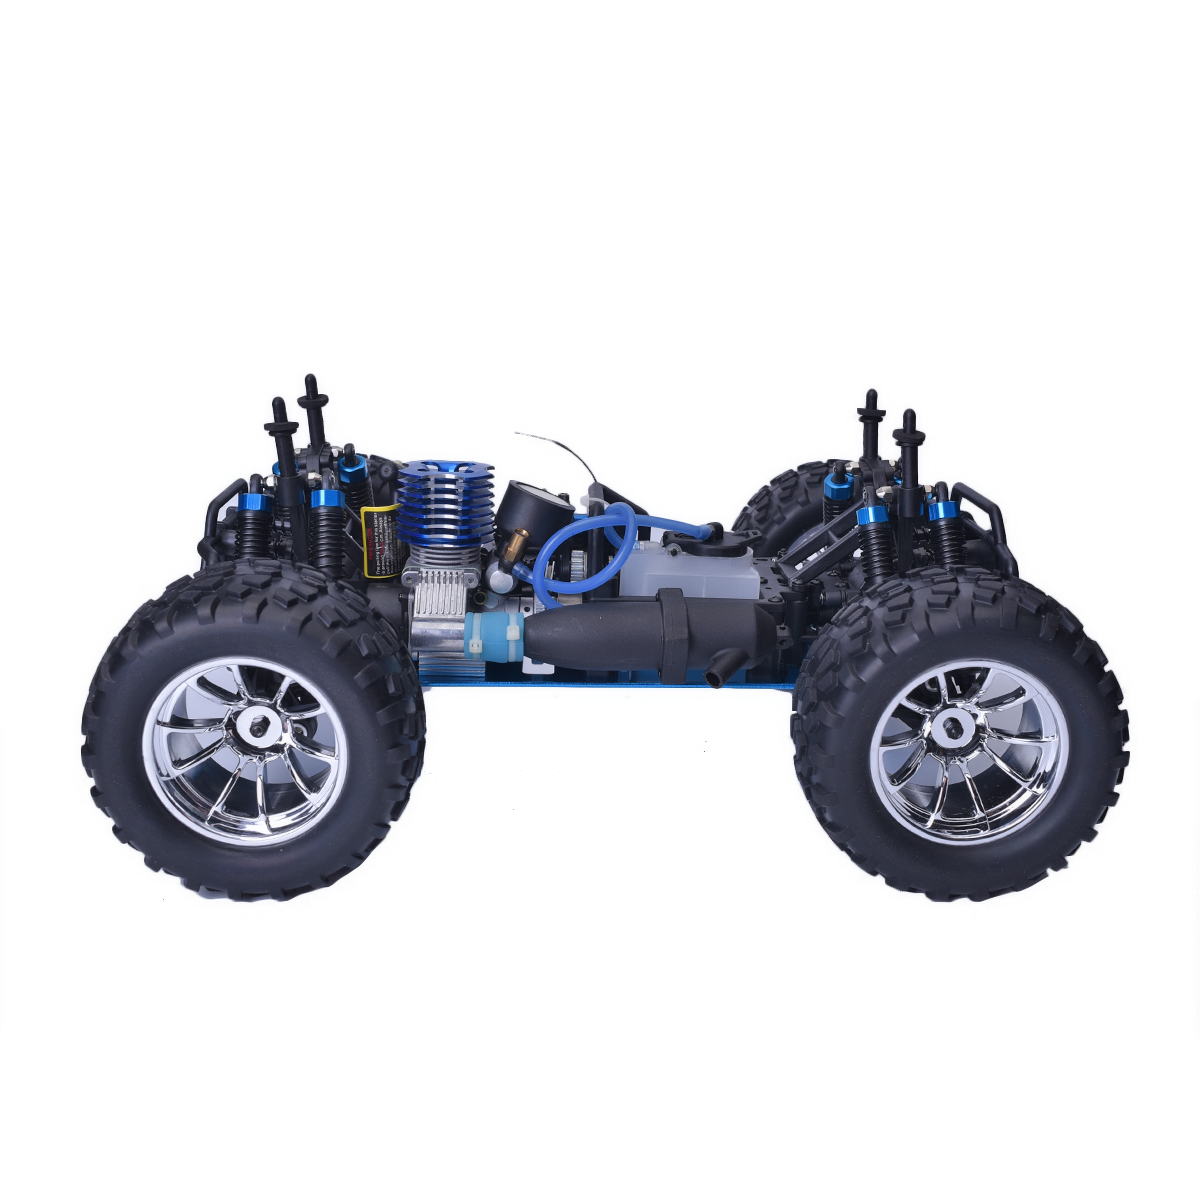 Hsp Rc Truck Nitro Gas Power Off Road Monster Truck 94188: HSP 94188 1/10 Scale RC Car Off Road 2.4G 4WD Monster